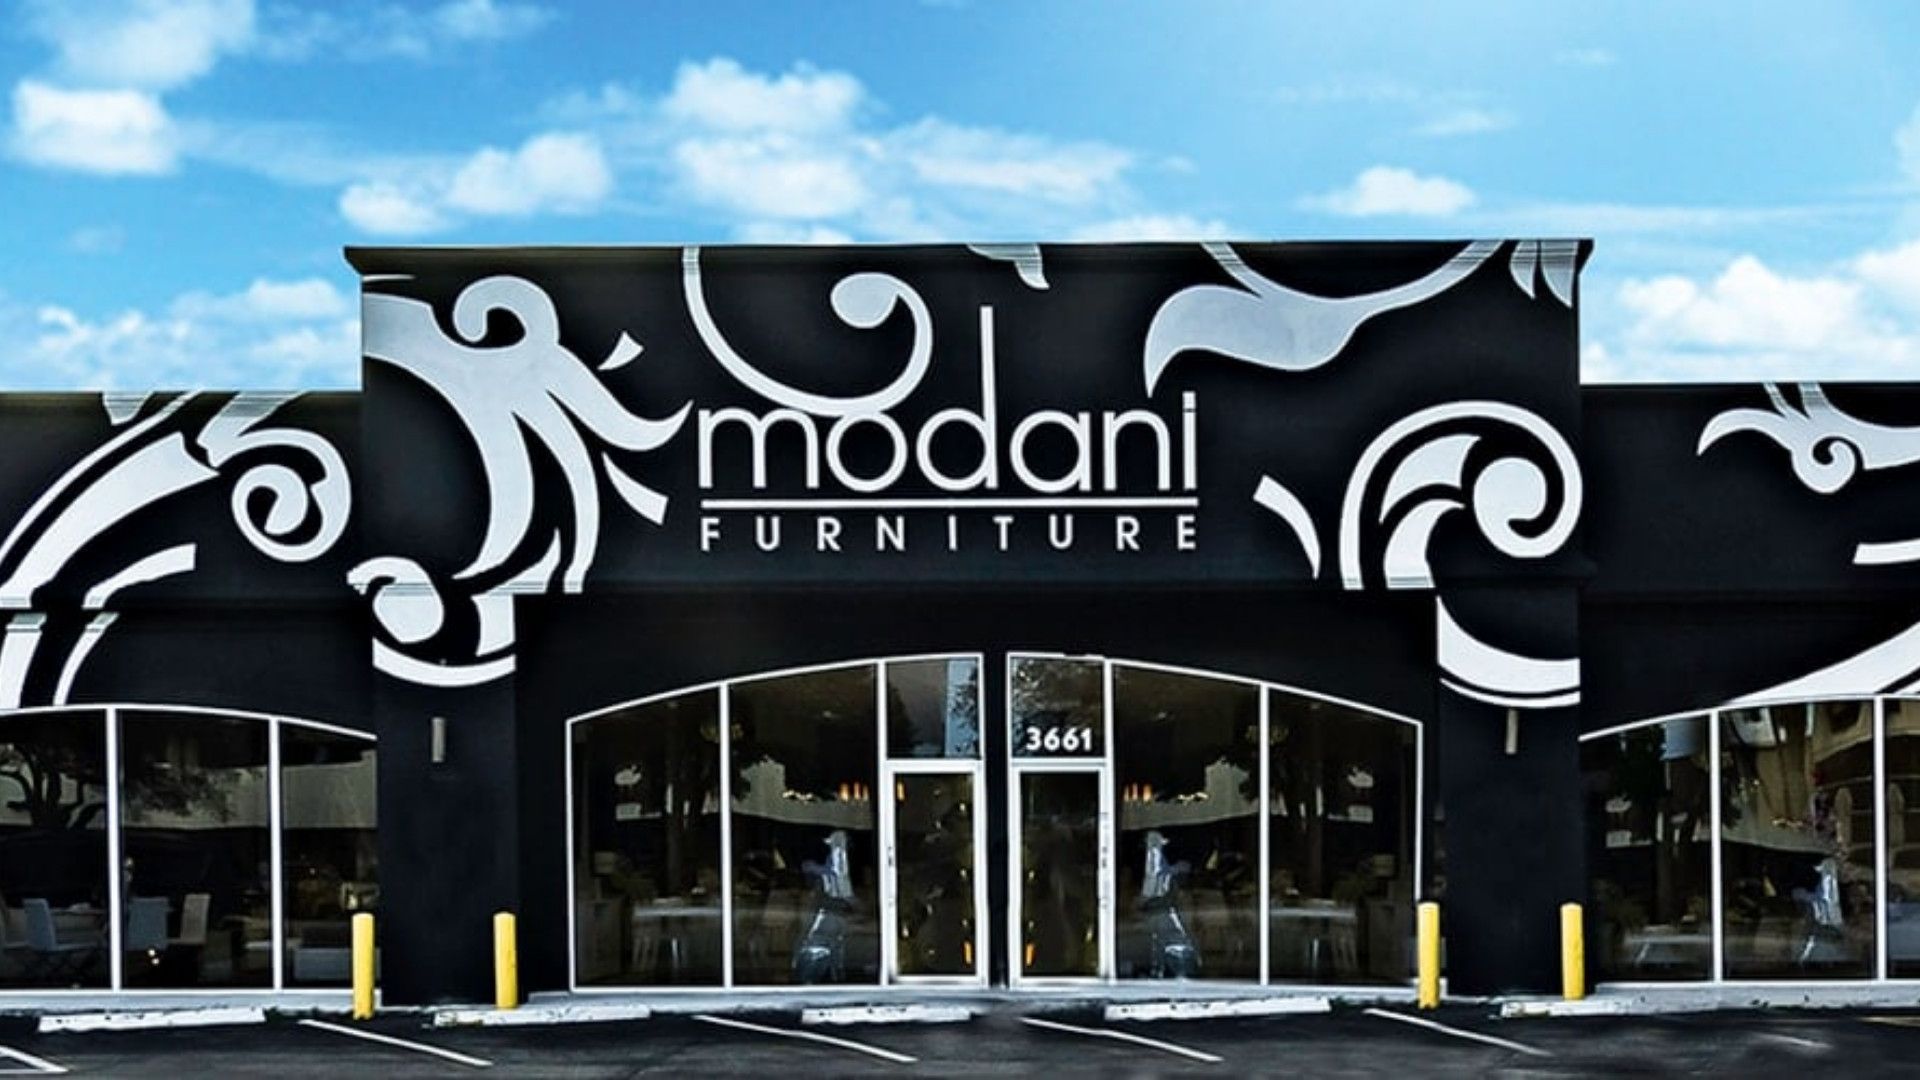 Modani Furniture Houston Reviews Furniture Stores At 5370 Westheimer Rd Houston Tx